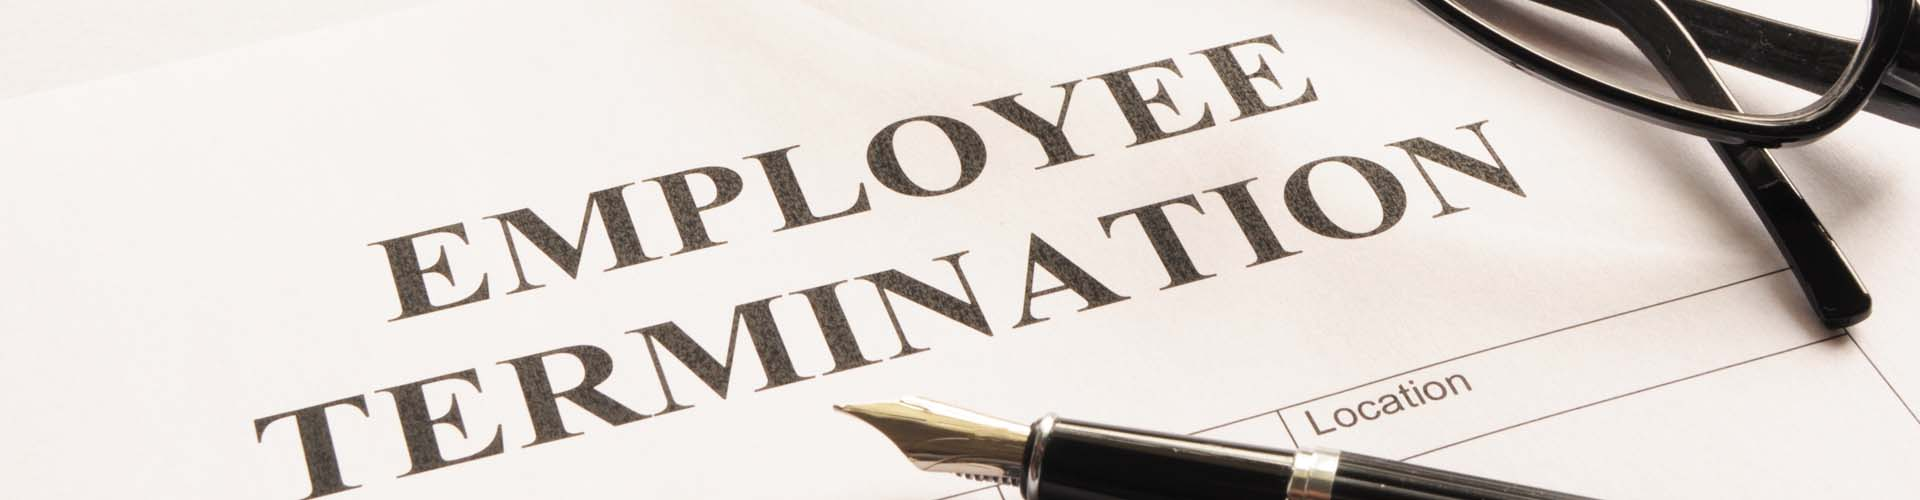 Wrongful termination printed on paper with pen on top of paper